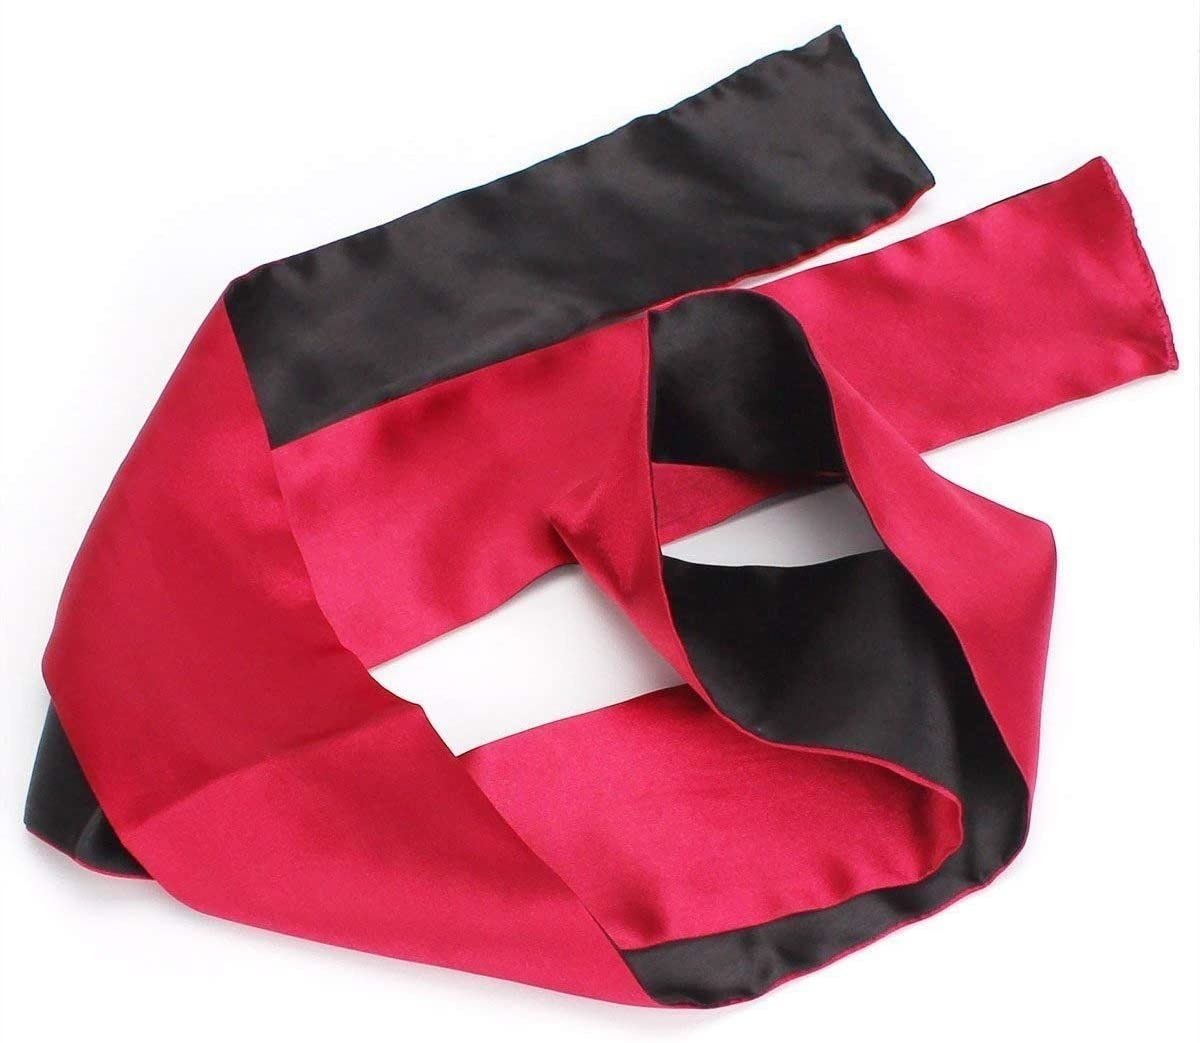 The black and red Satin Blindfold Mask